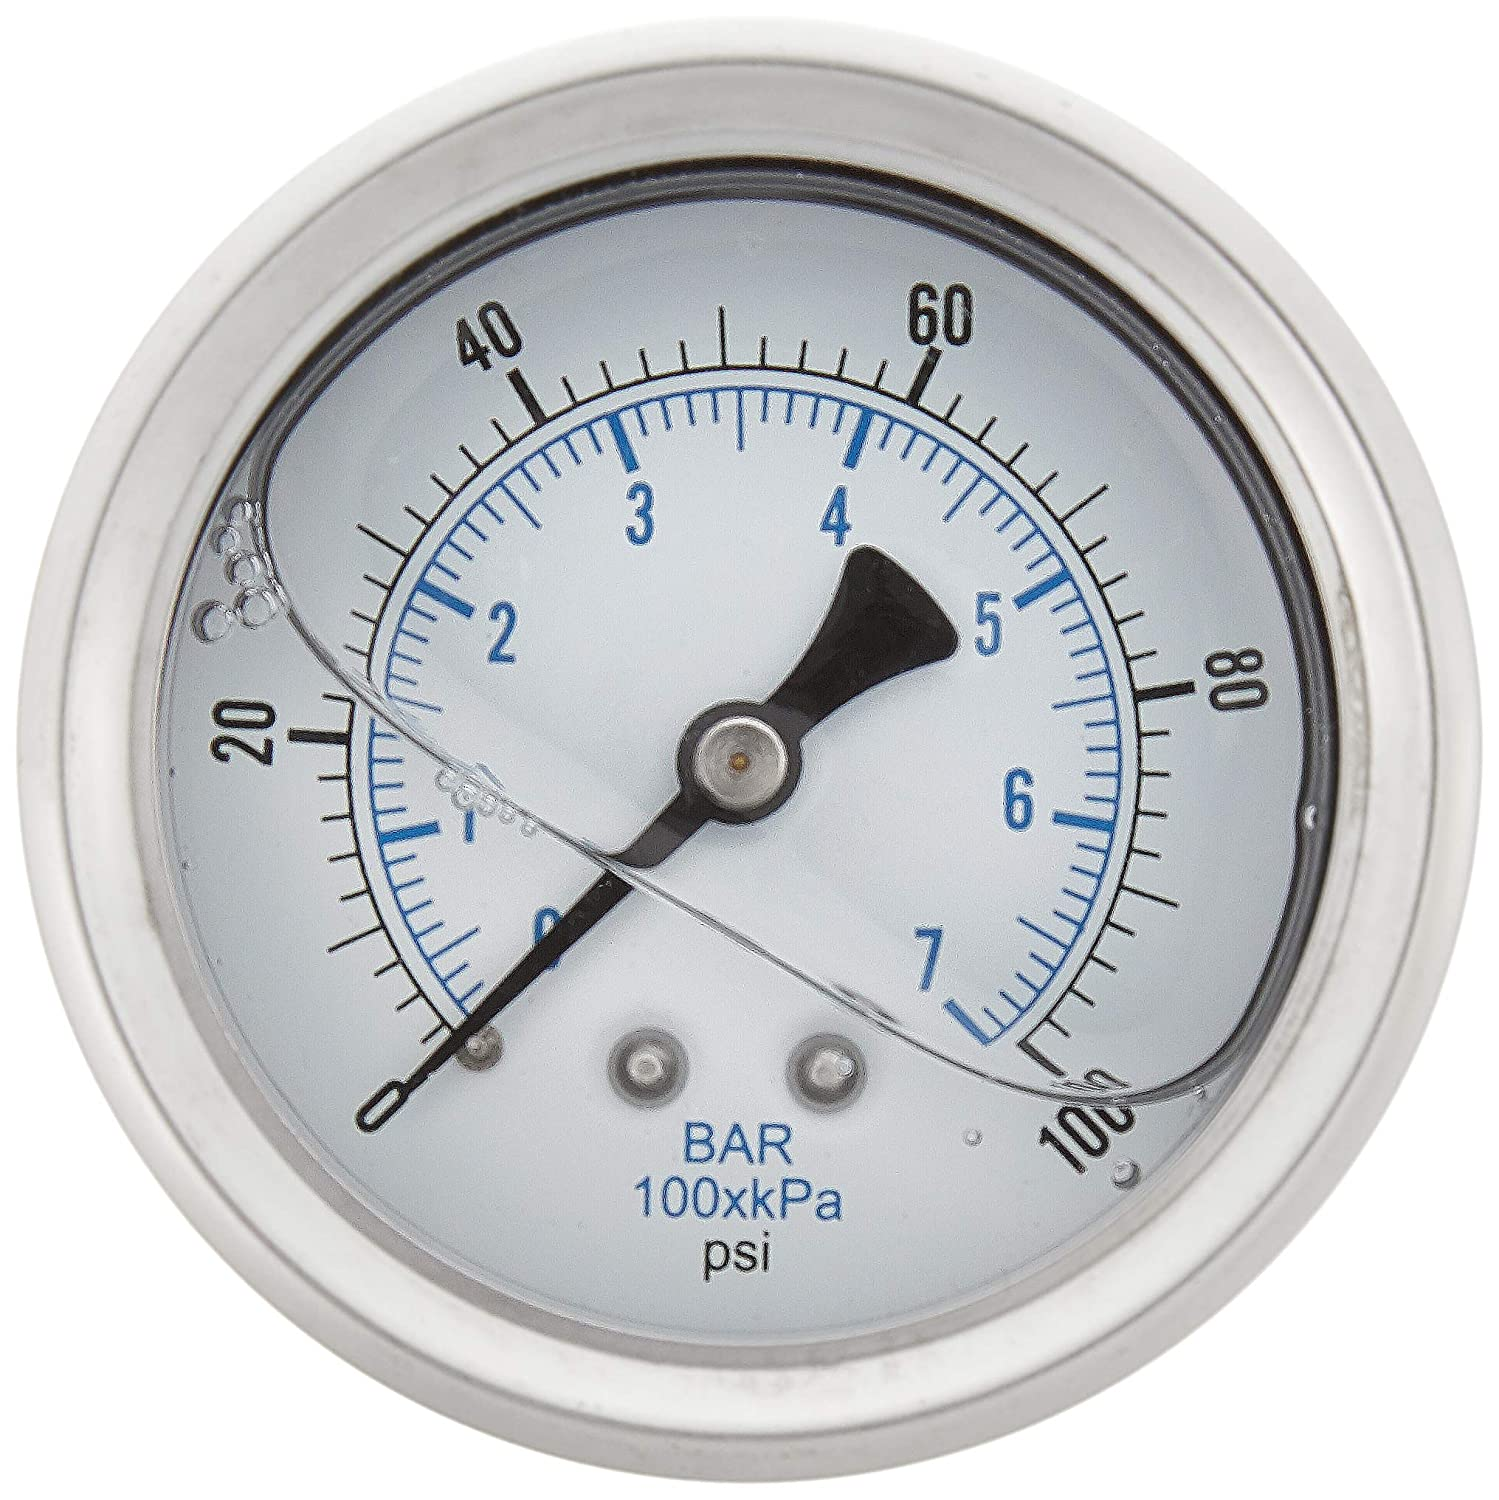 """New Stainless Steel Liquid Filled Pressure GAUGE WOG Water Oil Gas 0 to 100 PSI Center Back Mount 0-100 1/4"""" NPT Male 2.5"""" FACE DIAL for Compressor Hydraulic AIR Tank"""